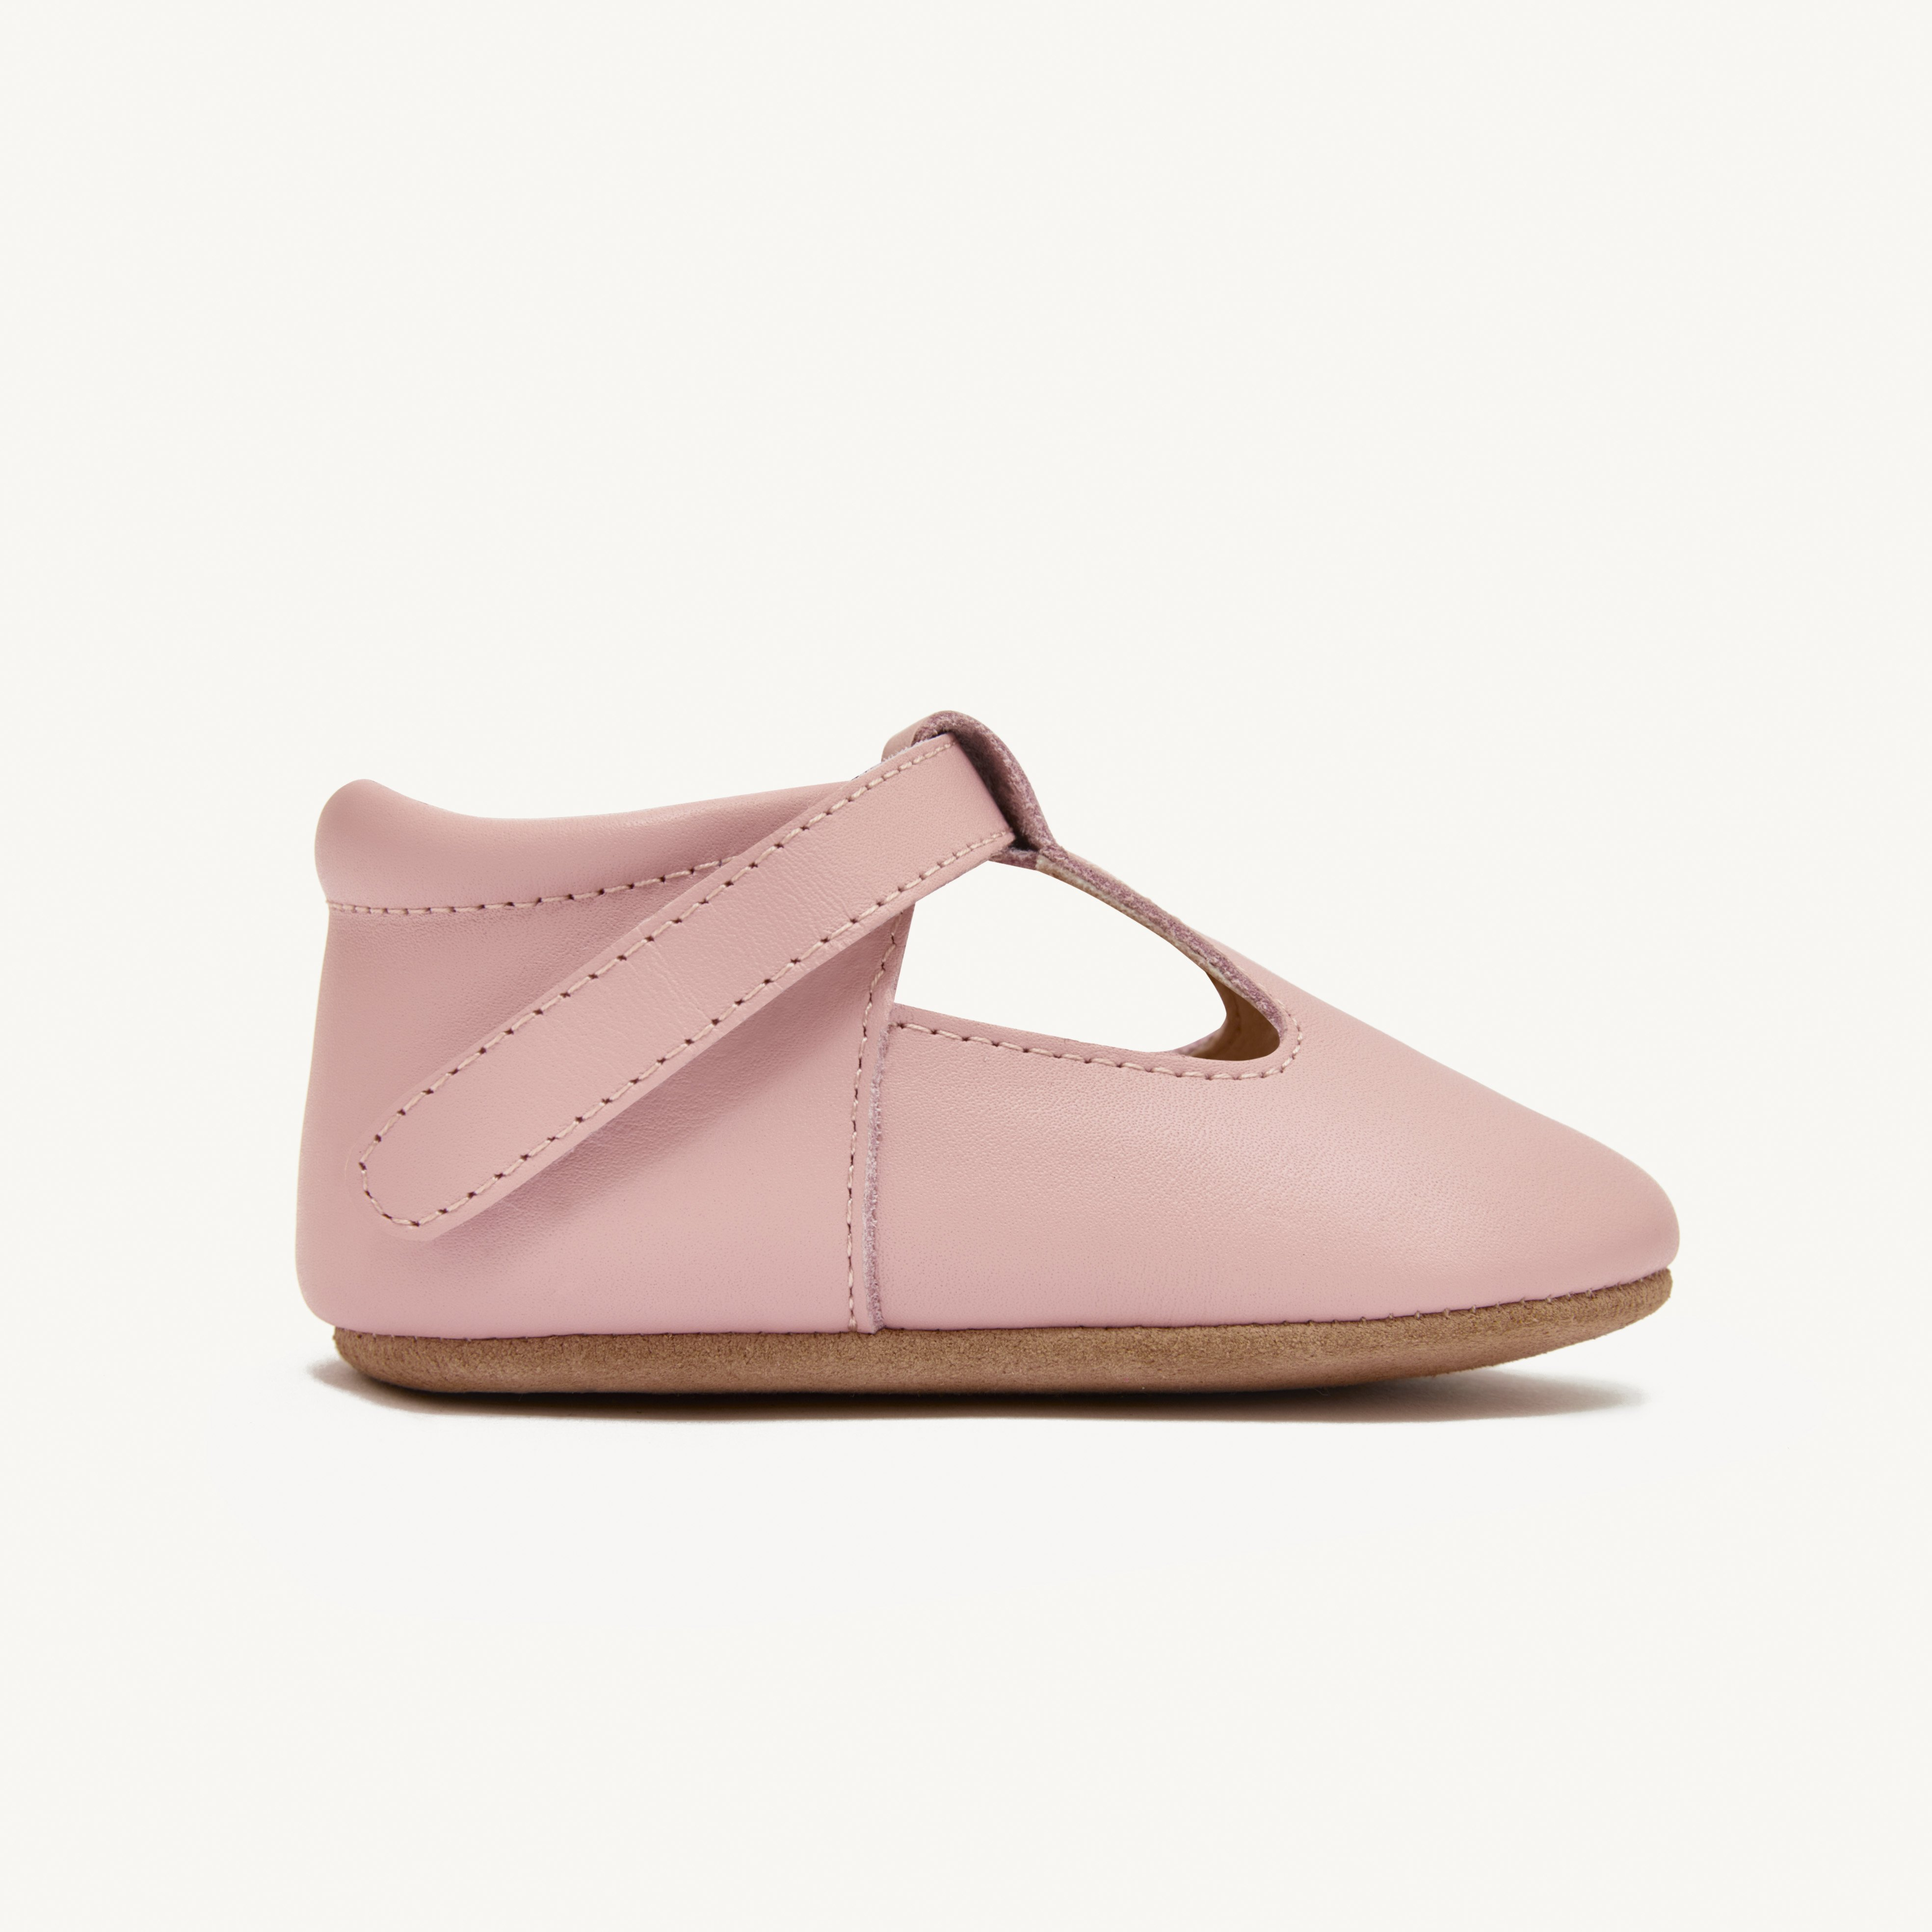 luisa blush leather baby mary janes